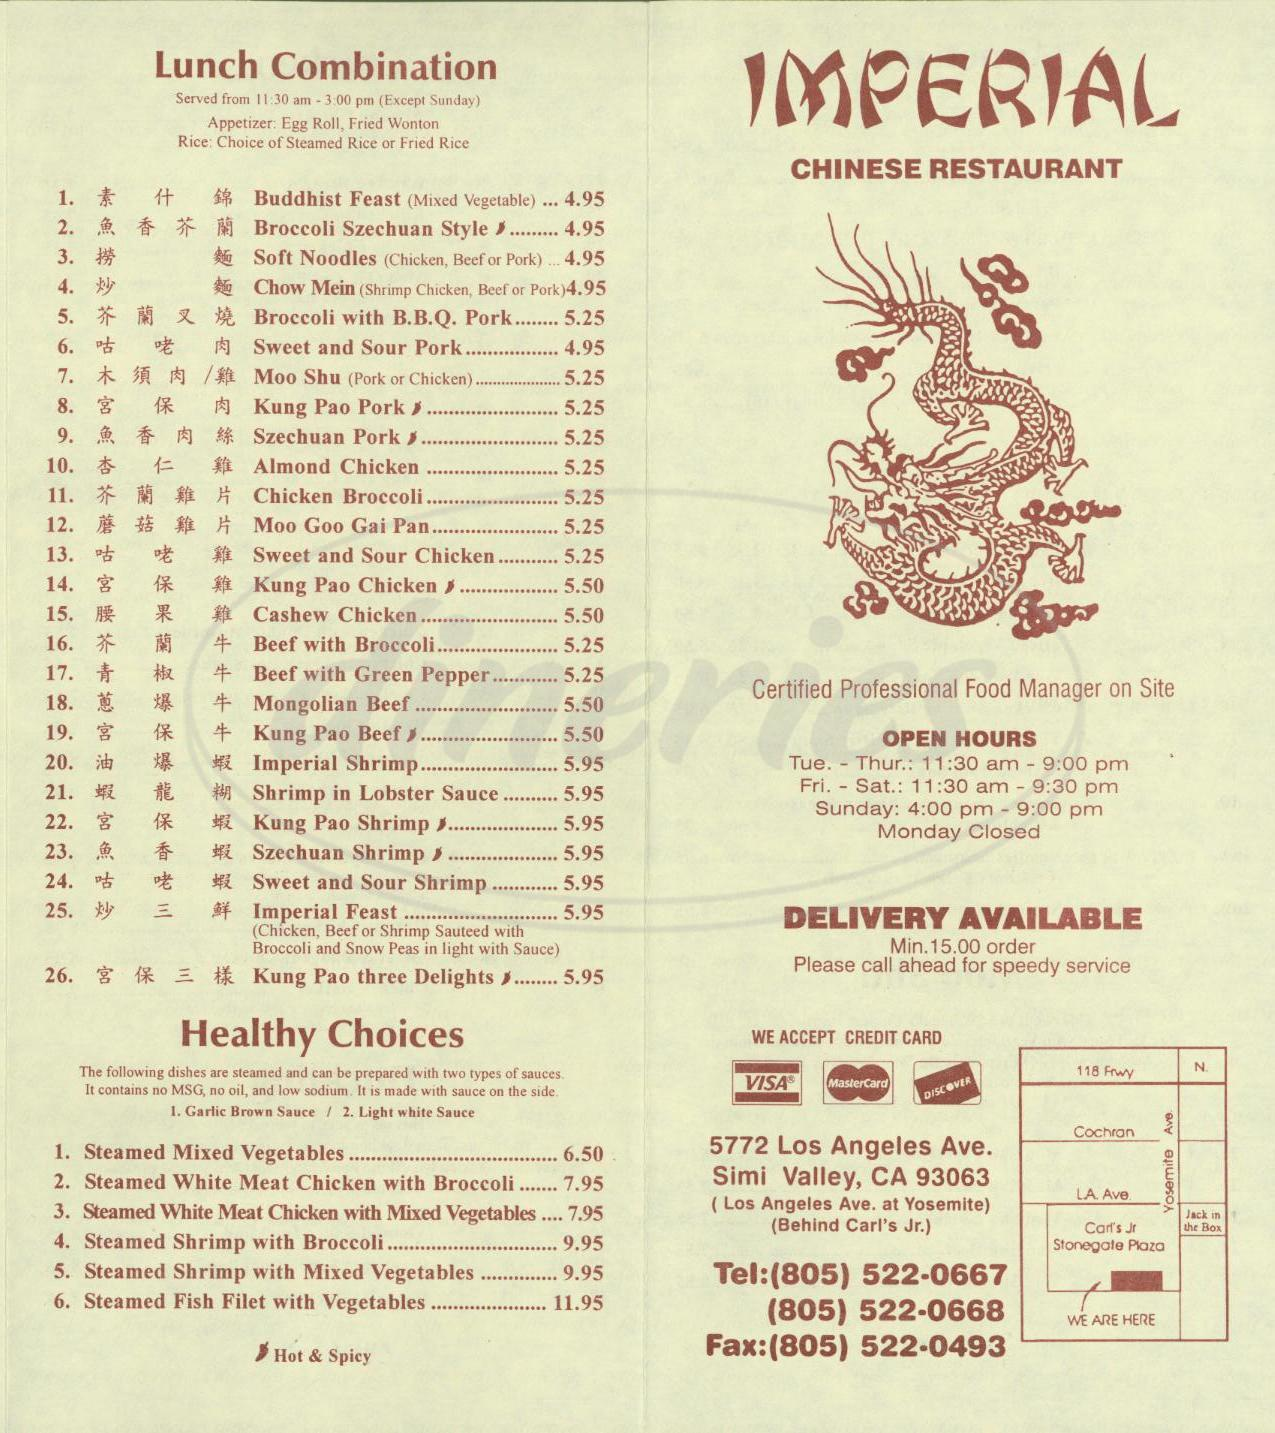 menu for Imperial Chinese Restaurant